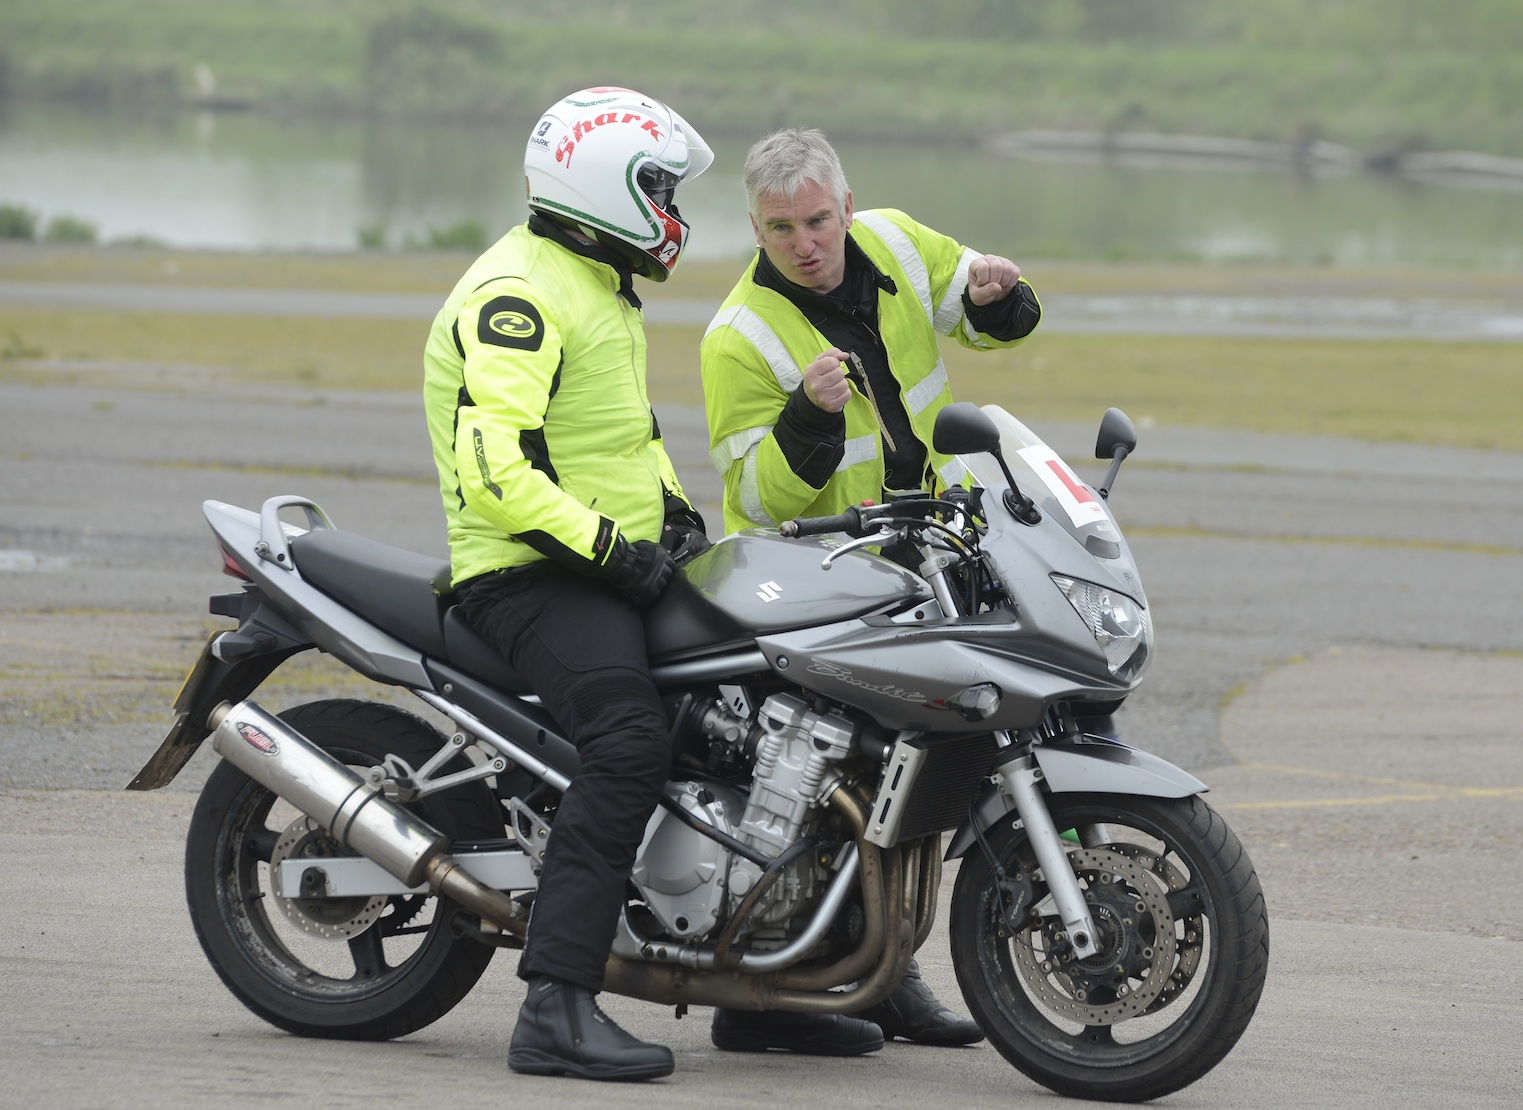 Motorcycle lessons CBT, Direct Access, Advanced cornering in Leicester, Hinckley, Derby, Nottingham, Birmingham, St Albans, Lincoln, St Neots, Camberley, Epsom, Kensington, Chelsea, Dagenham, Canvey Island, Chichester, Cirencester, Bristol, Bath, Cheltenham, Kettering, Kidderminster